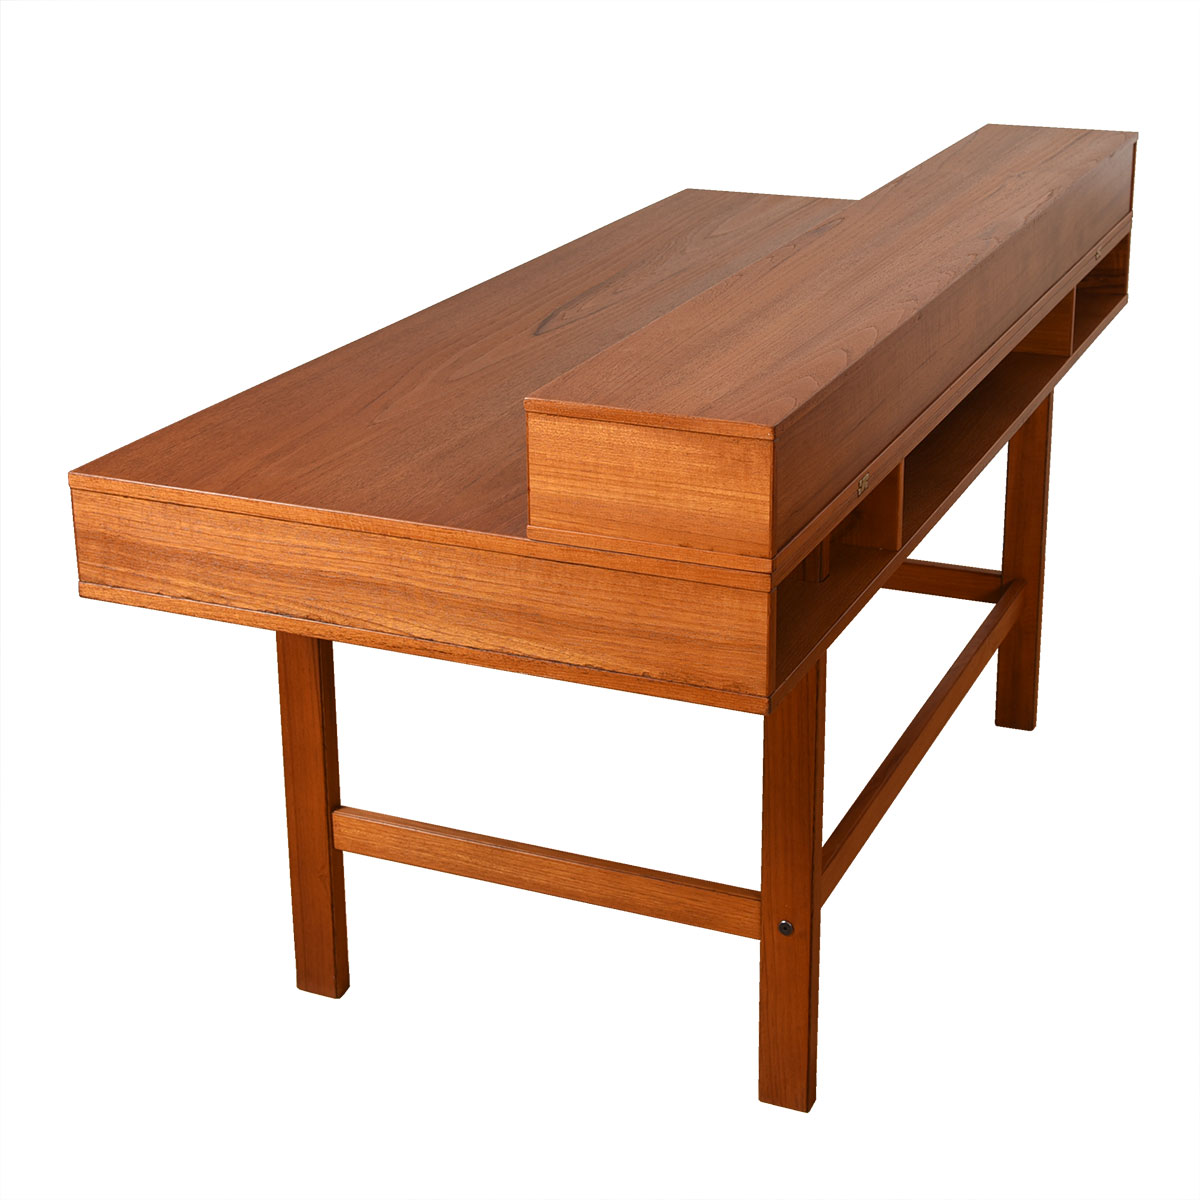 Lovig 'Flip-Top' Danish Modern Teak Partner's Desk.